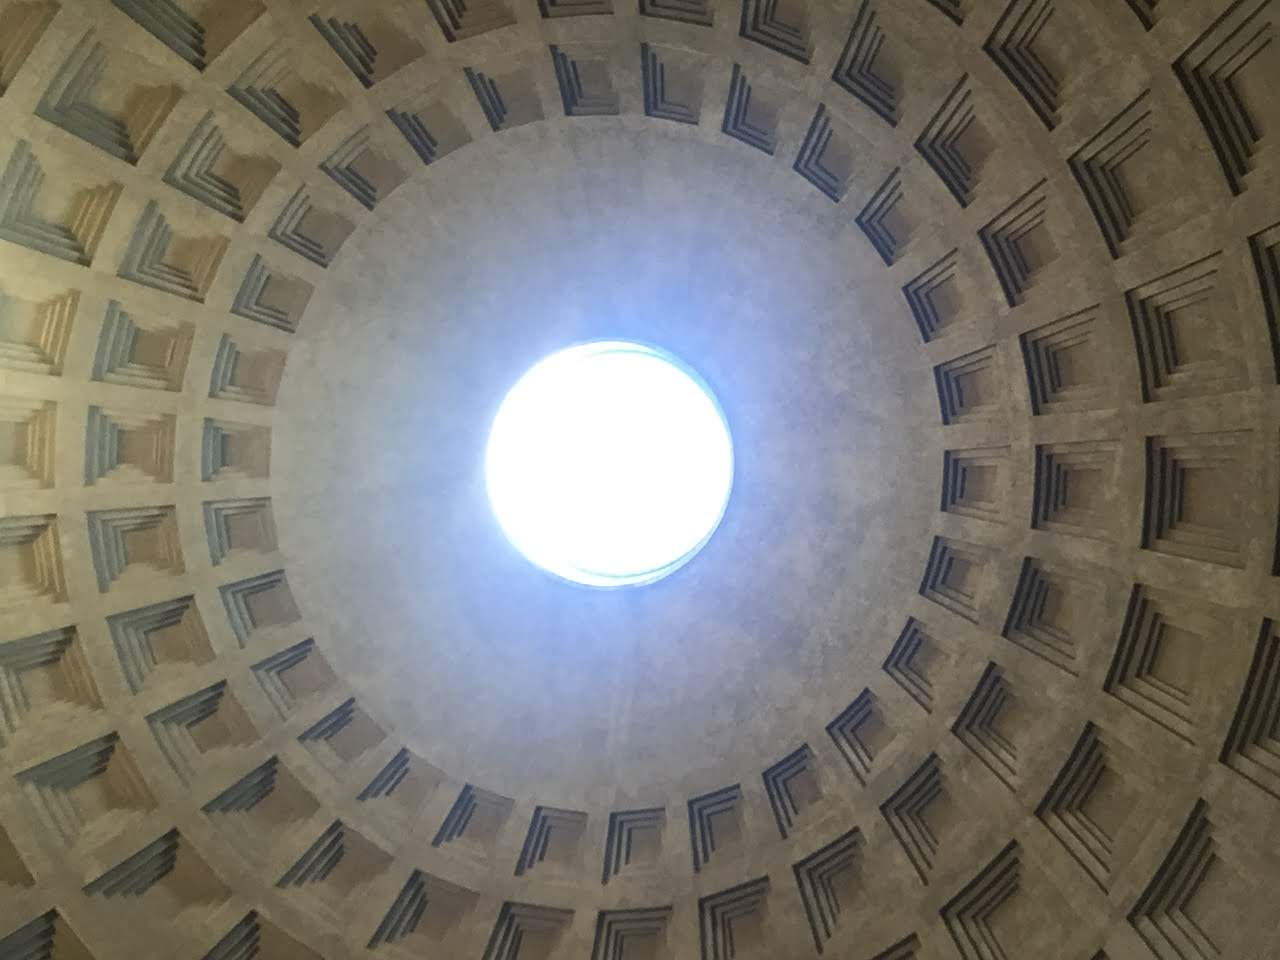 Ceiling of the Pantheon, Rome